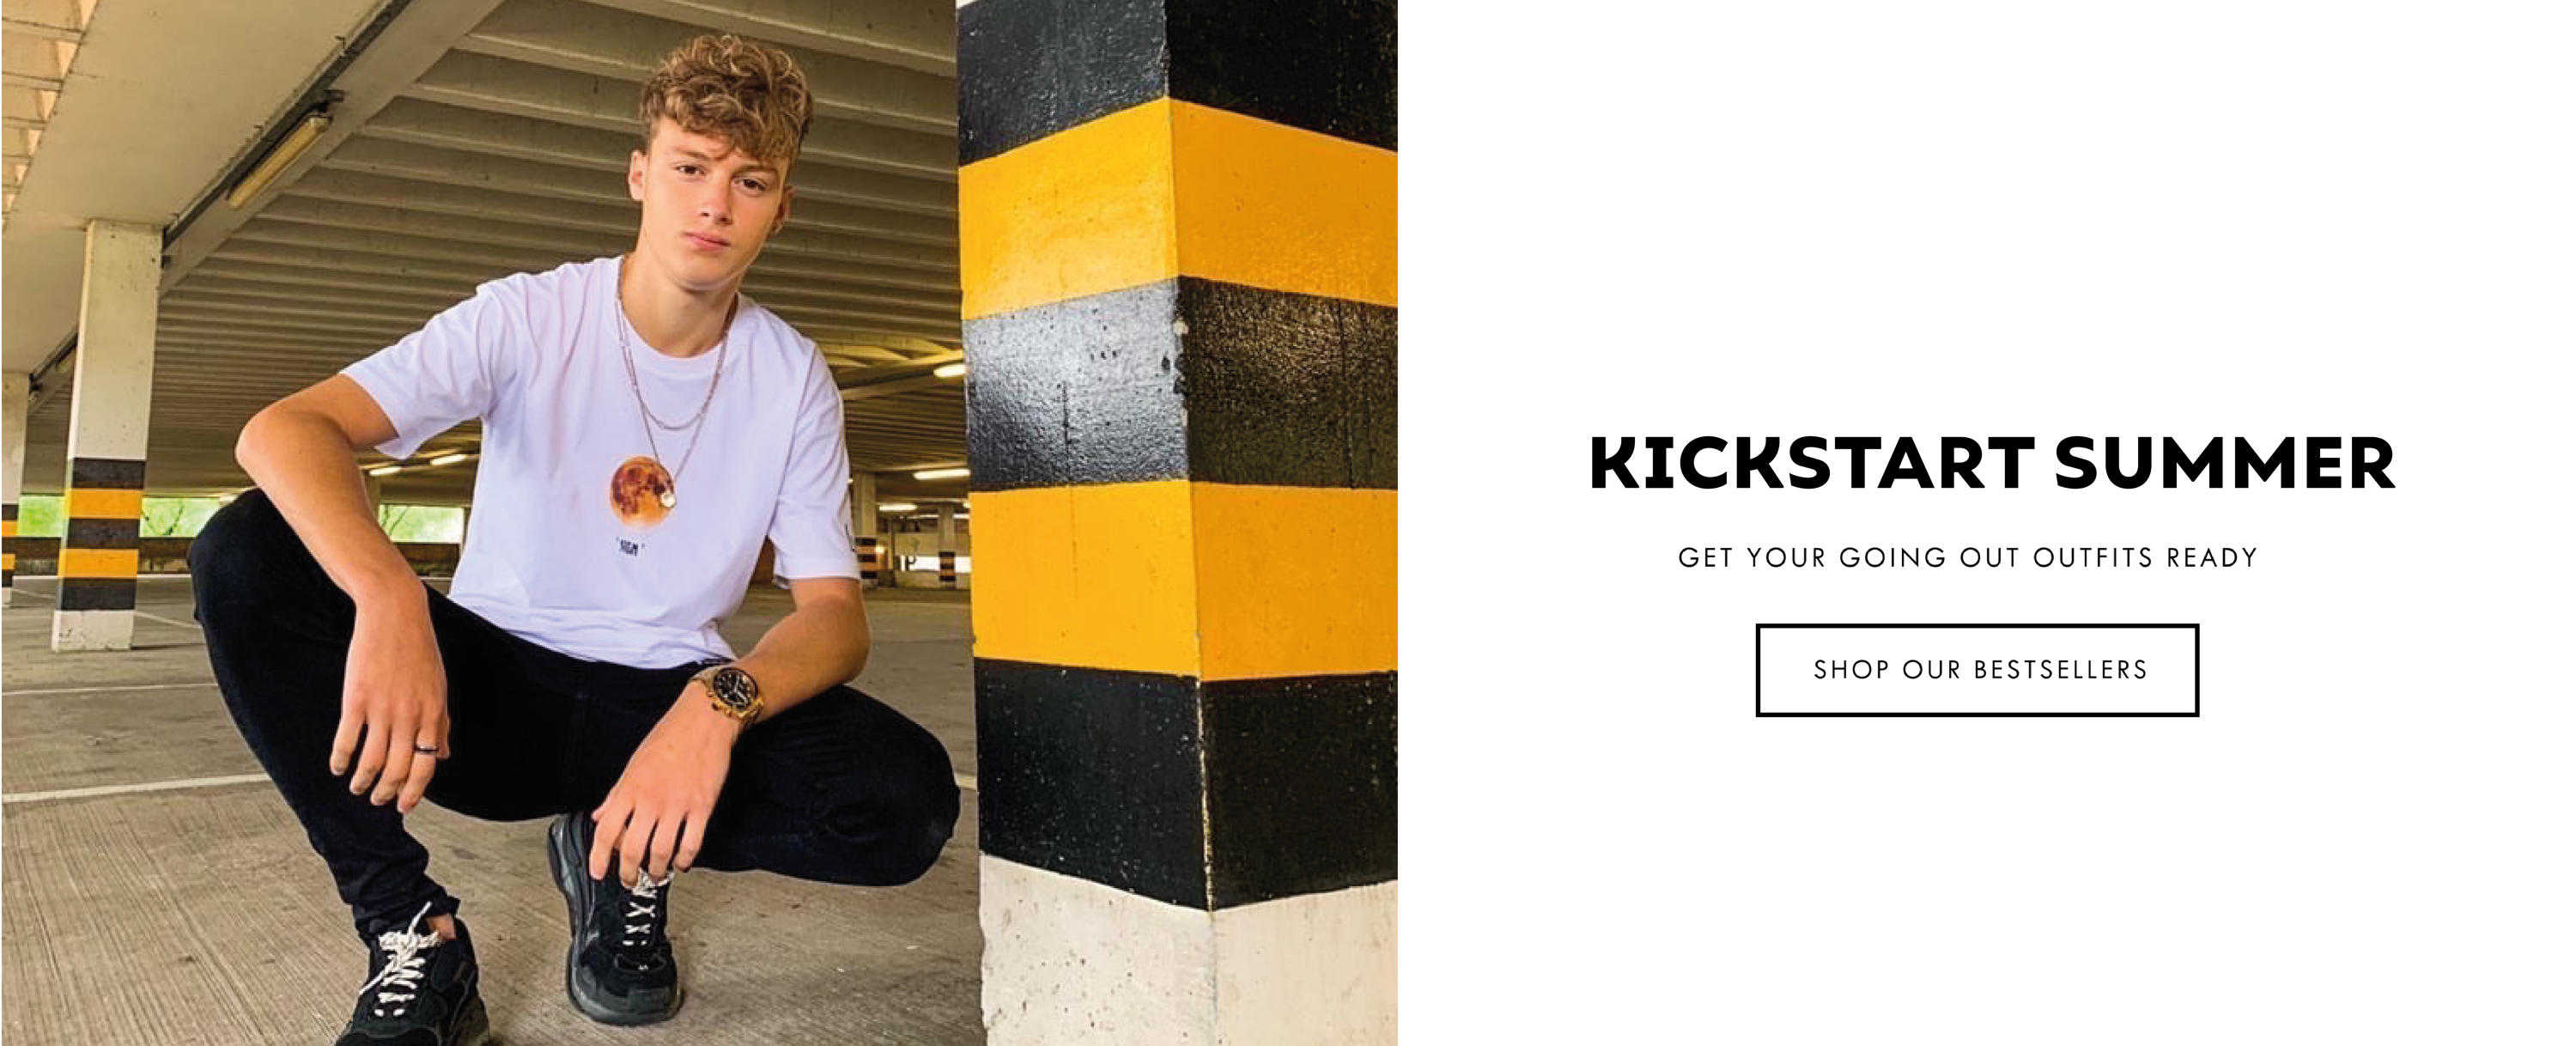 Kickstart Summer - Shop our Bestsellers